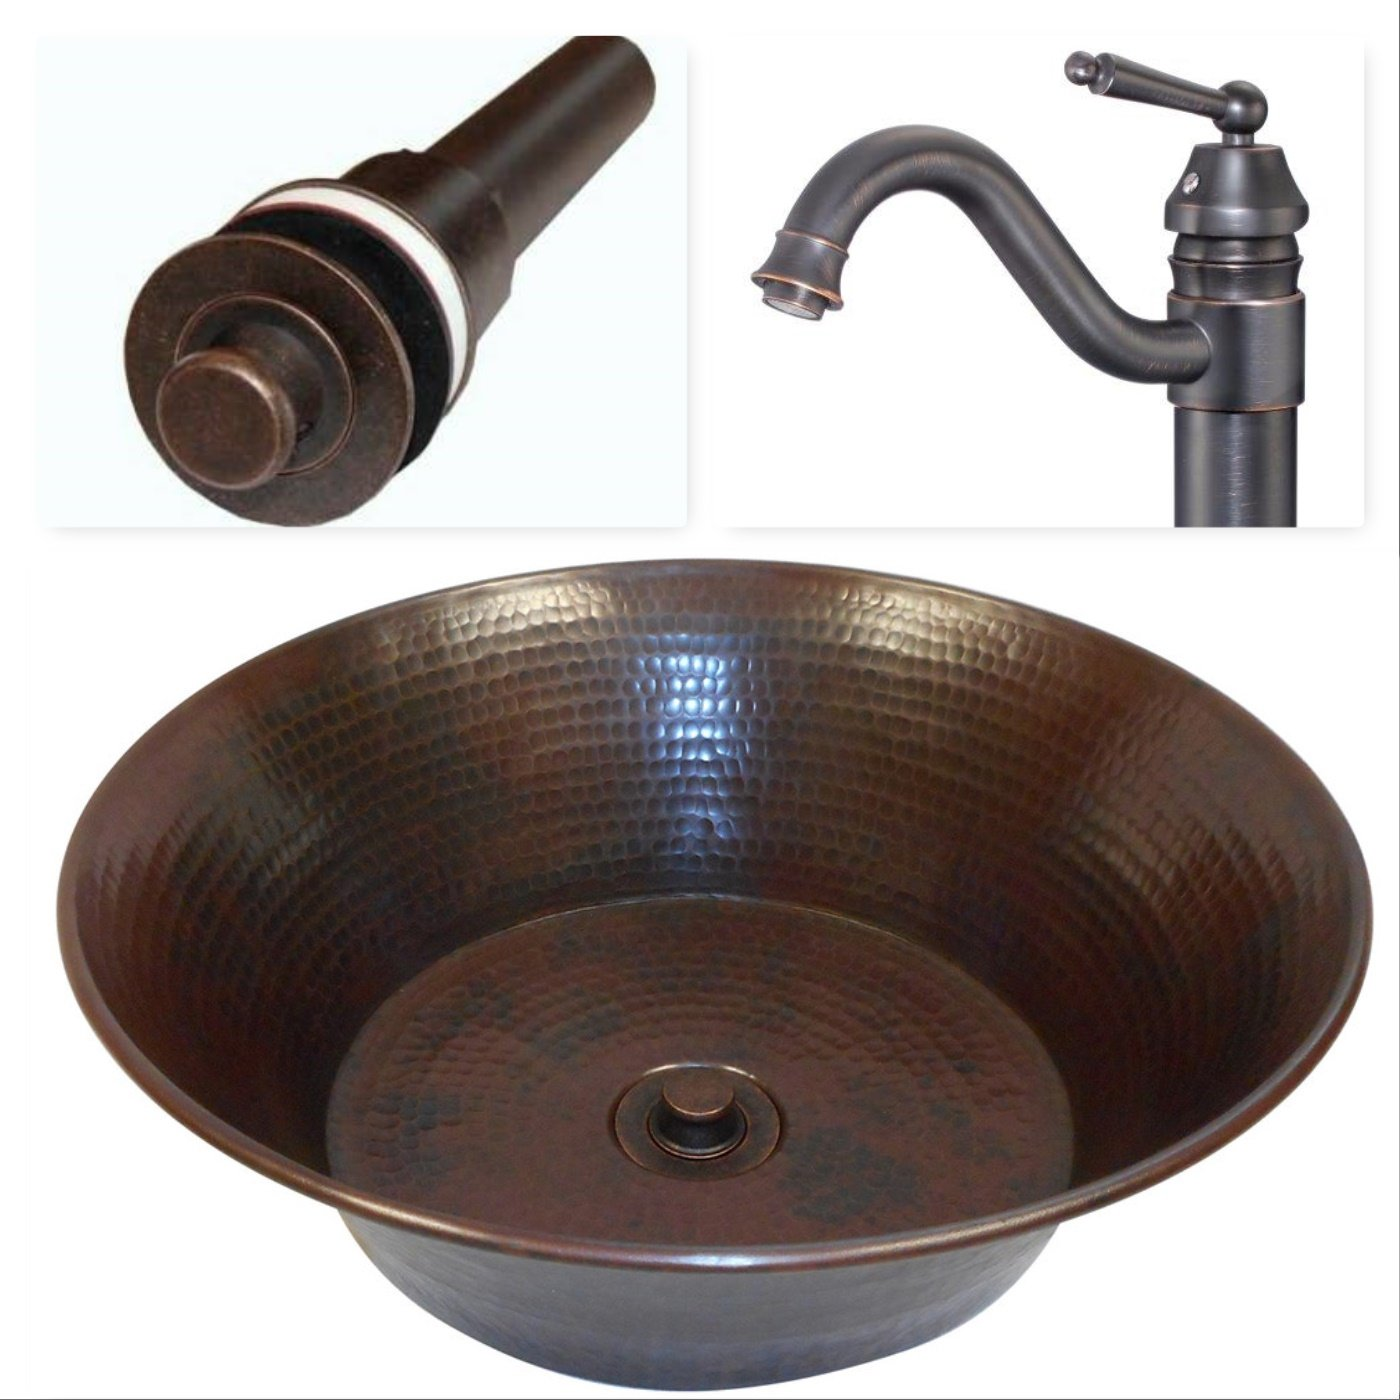 SimplyCopper 15'' Round Copper Vessel Bath Sink with Faucet and Drain Inlcuded by SimplyCopper